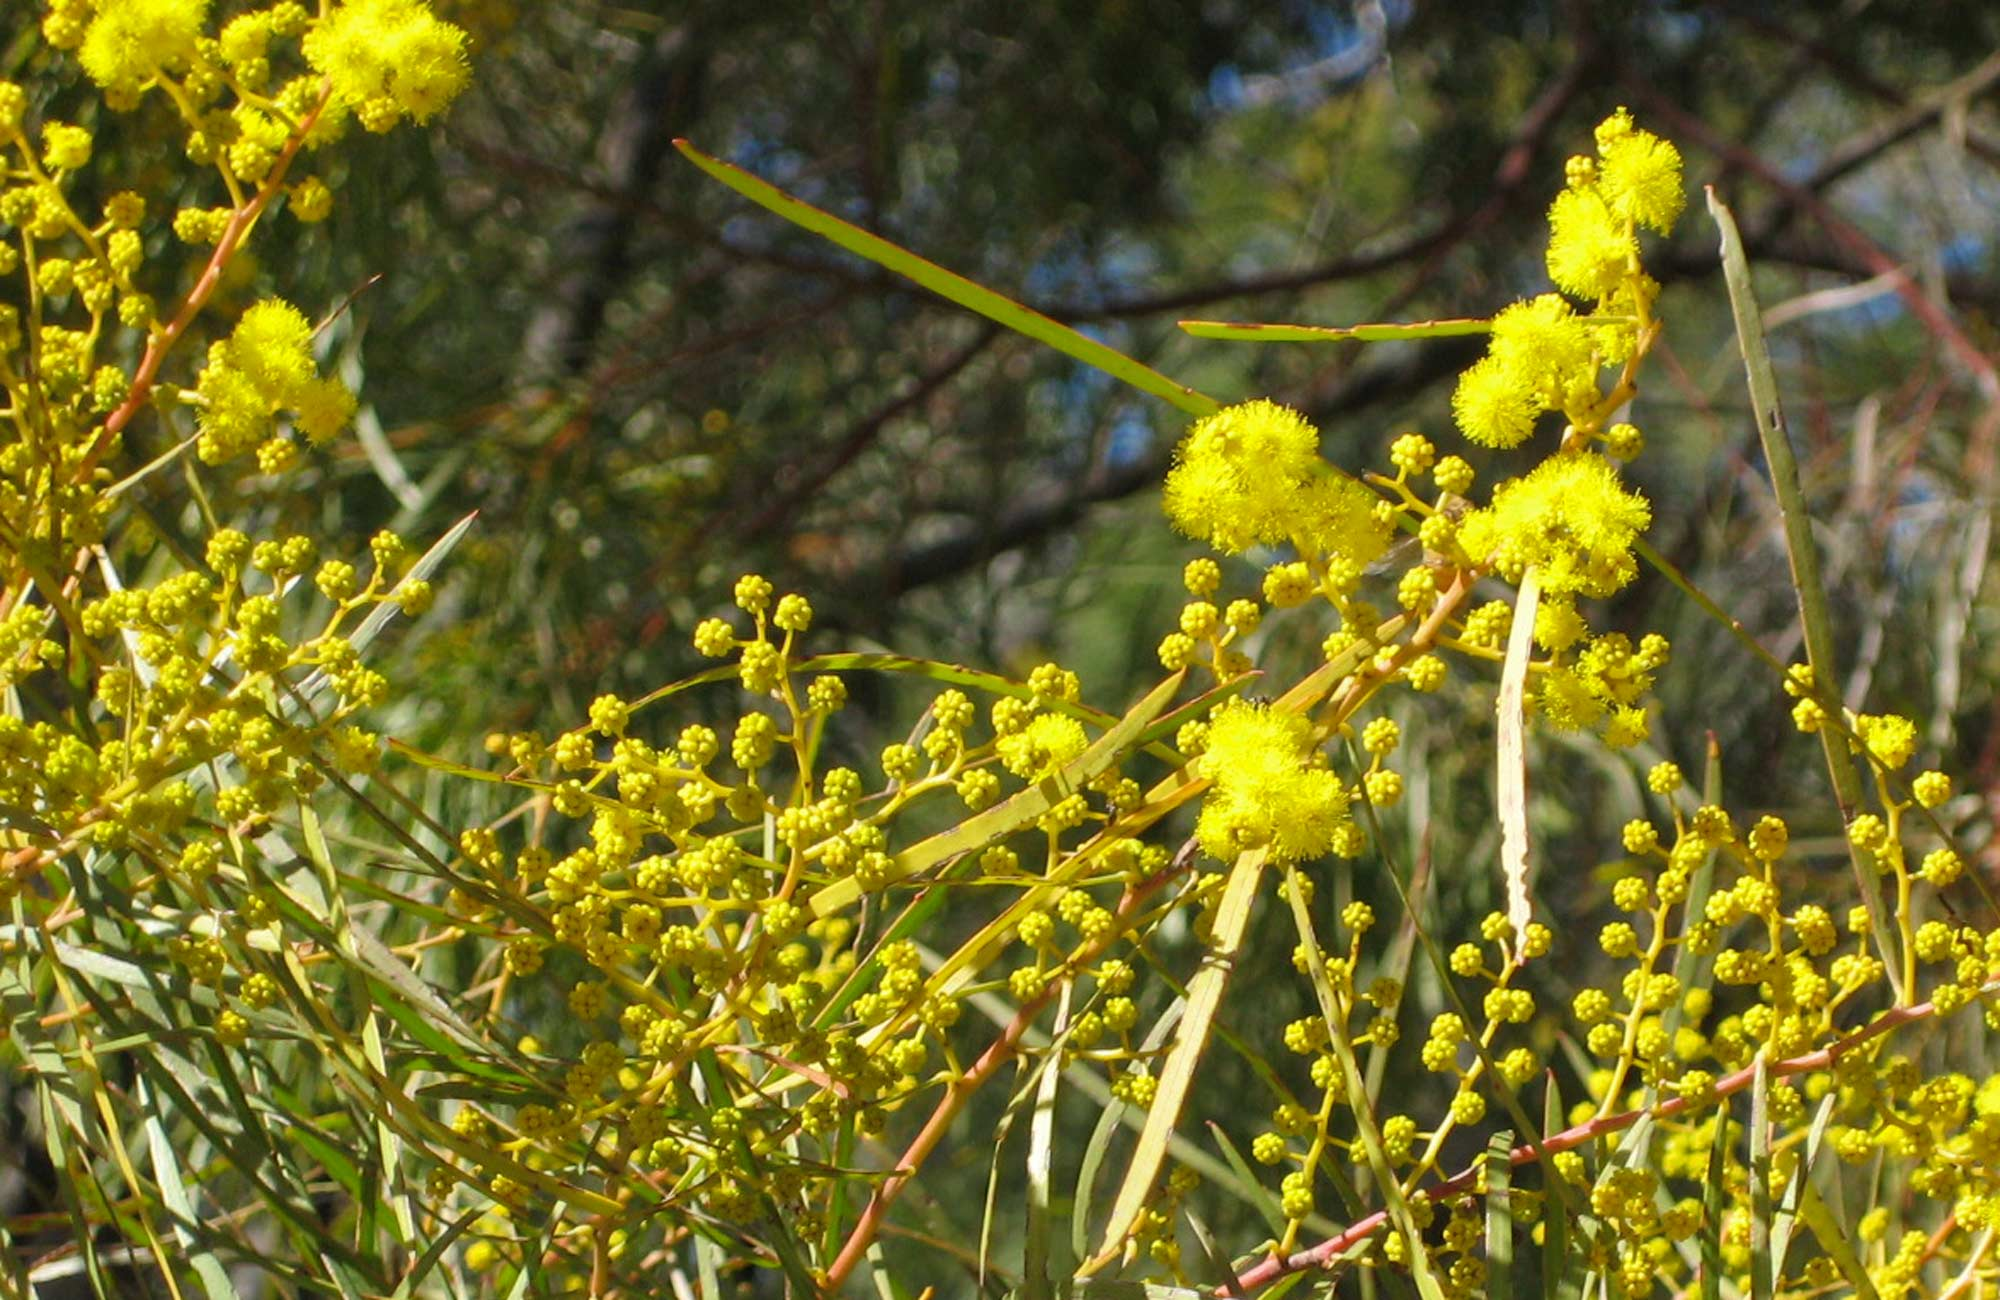 Wattle in bloom, Beni State Conservation Area. Photo: M Bannerman/NSW Government